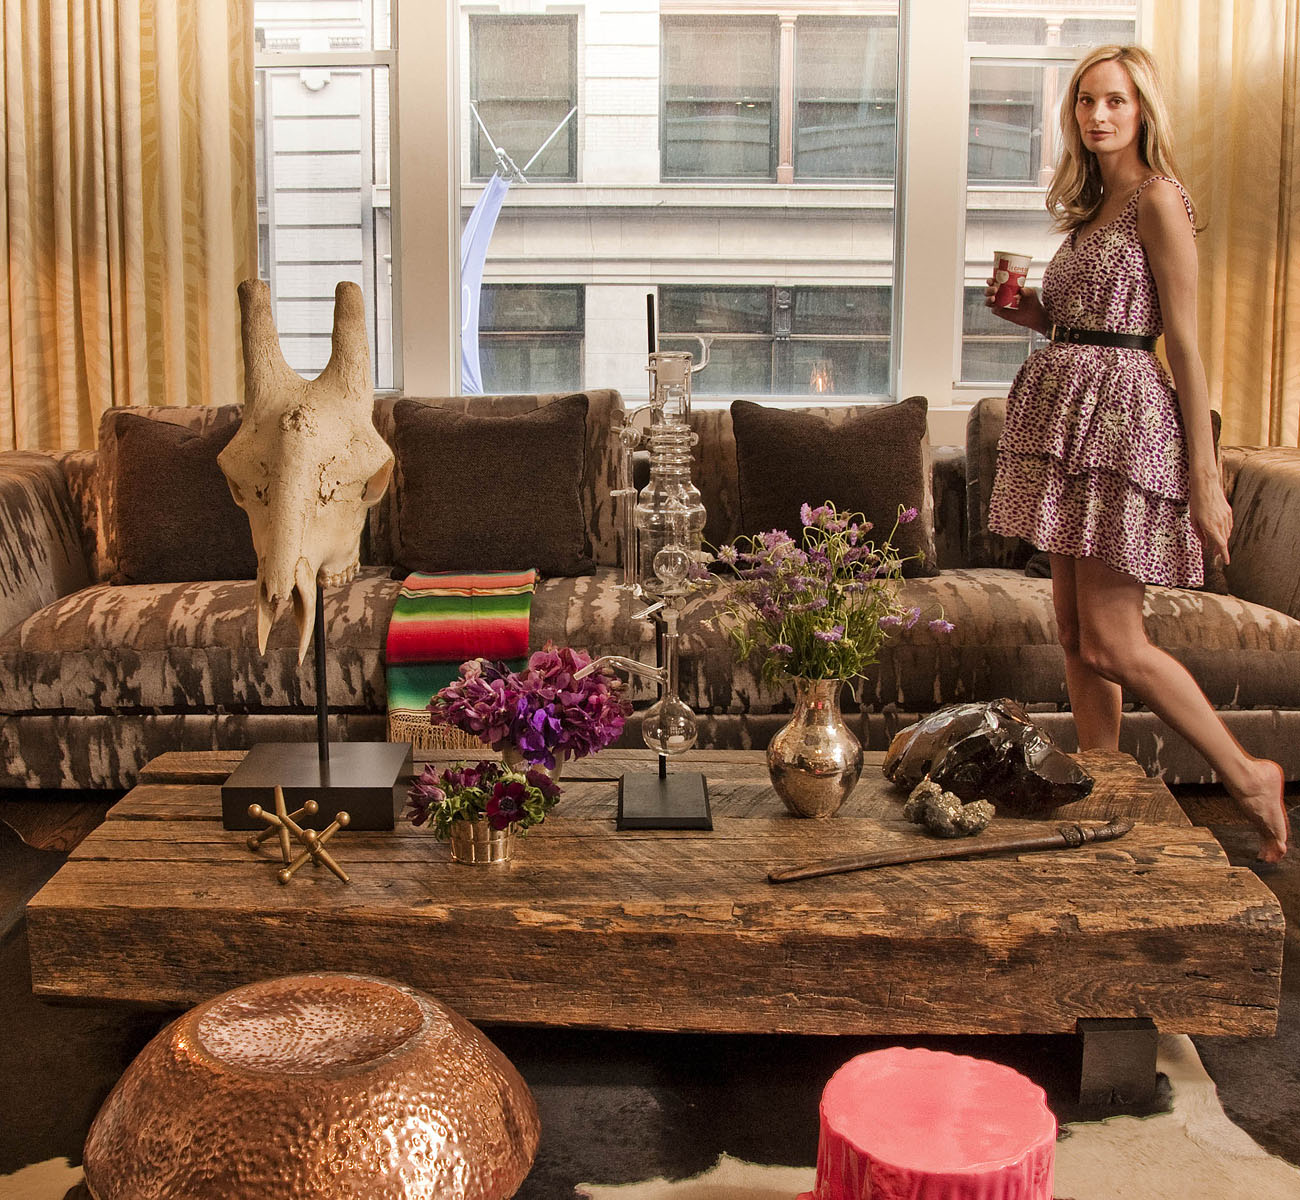 Fashionista Lauren Santo Domingo Brings 'Twisted Classic' Sensibility to Home Décor